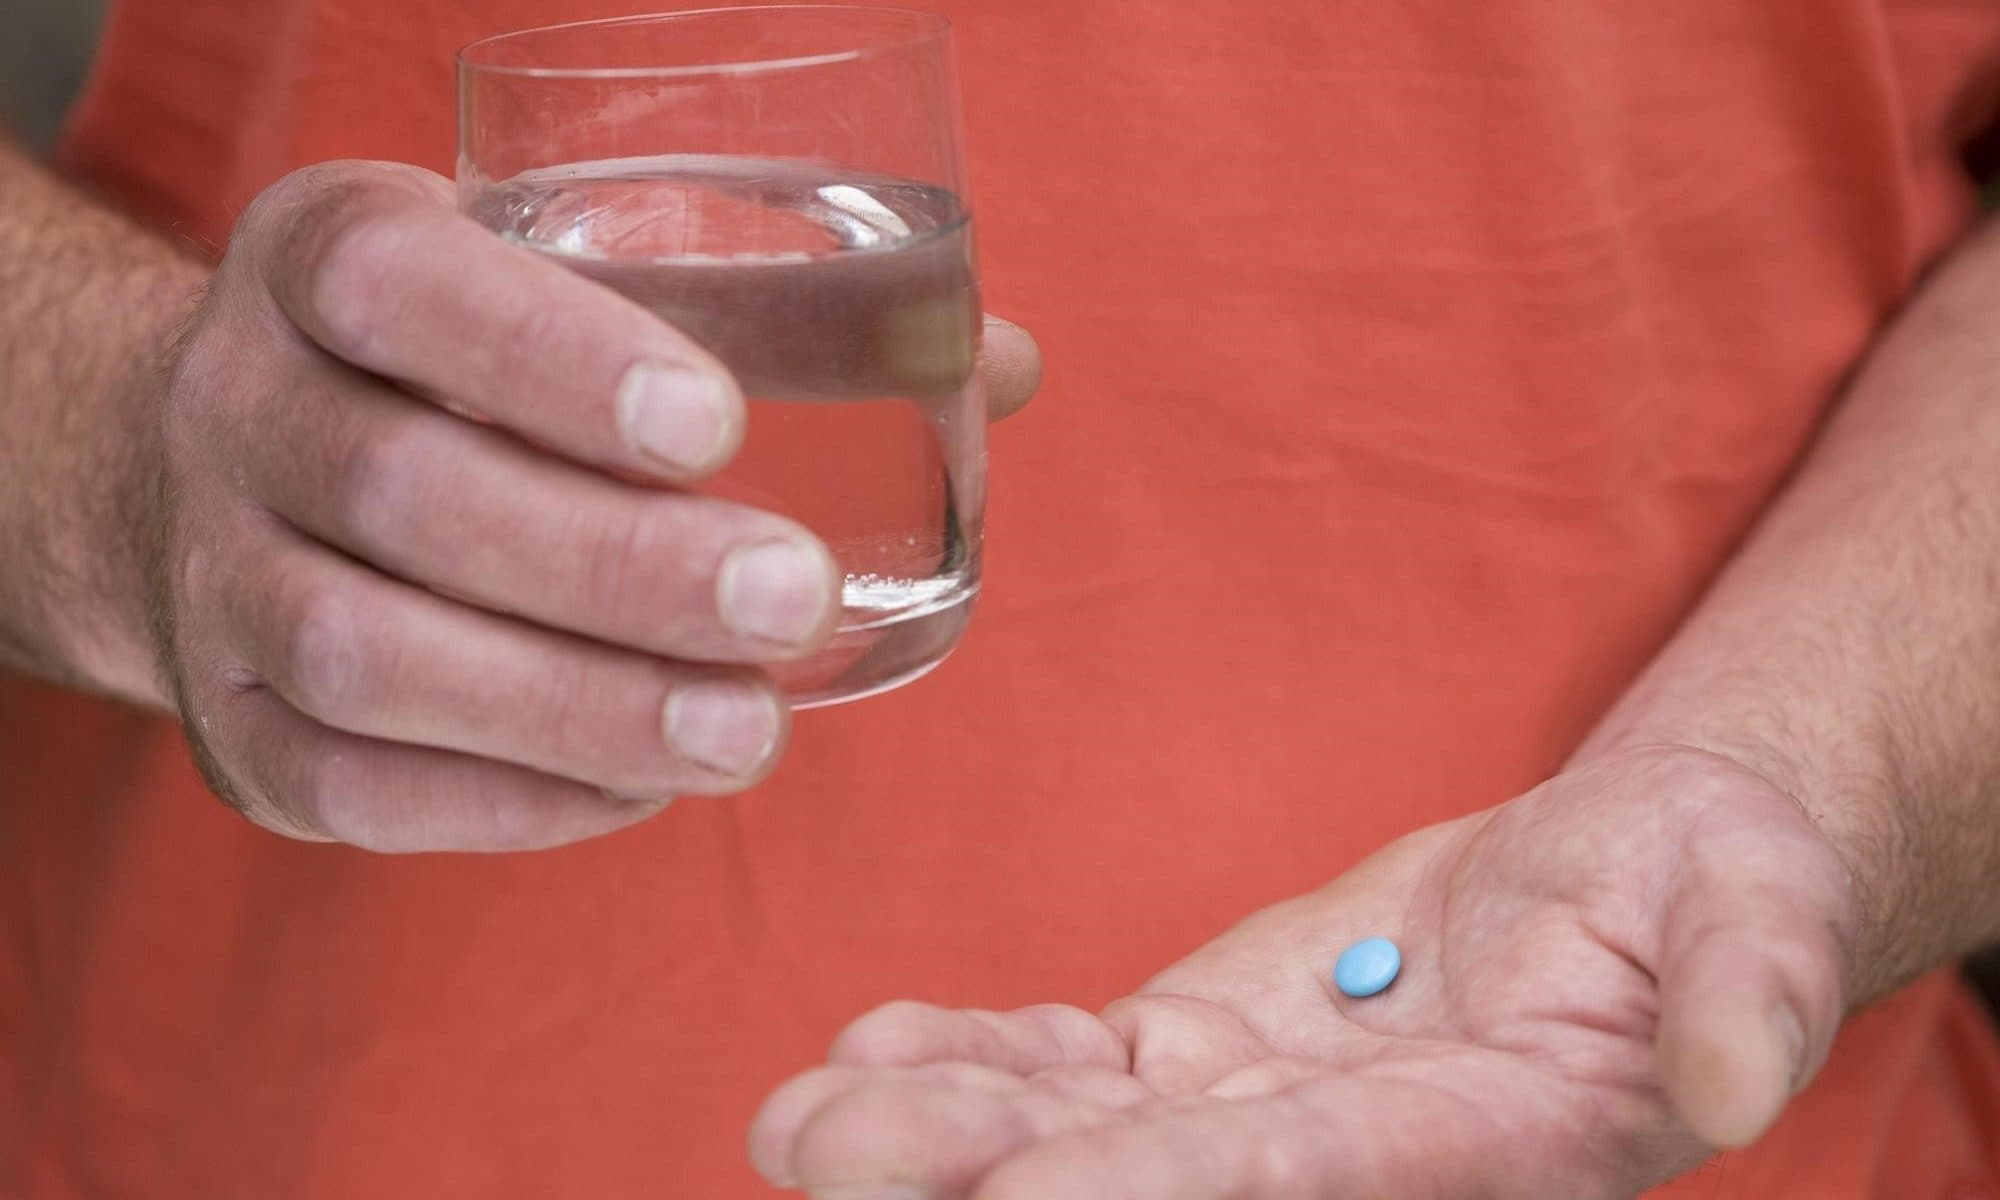 A man holding a glass of water in one hand, and a viagra pill in the other hand